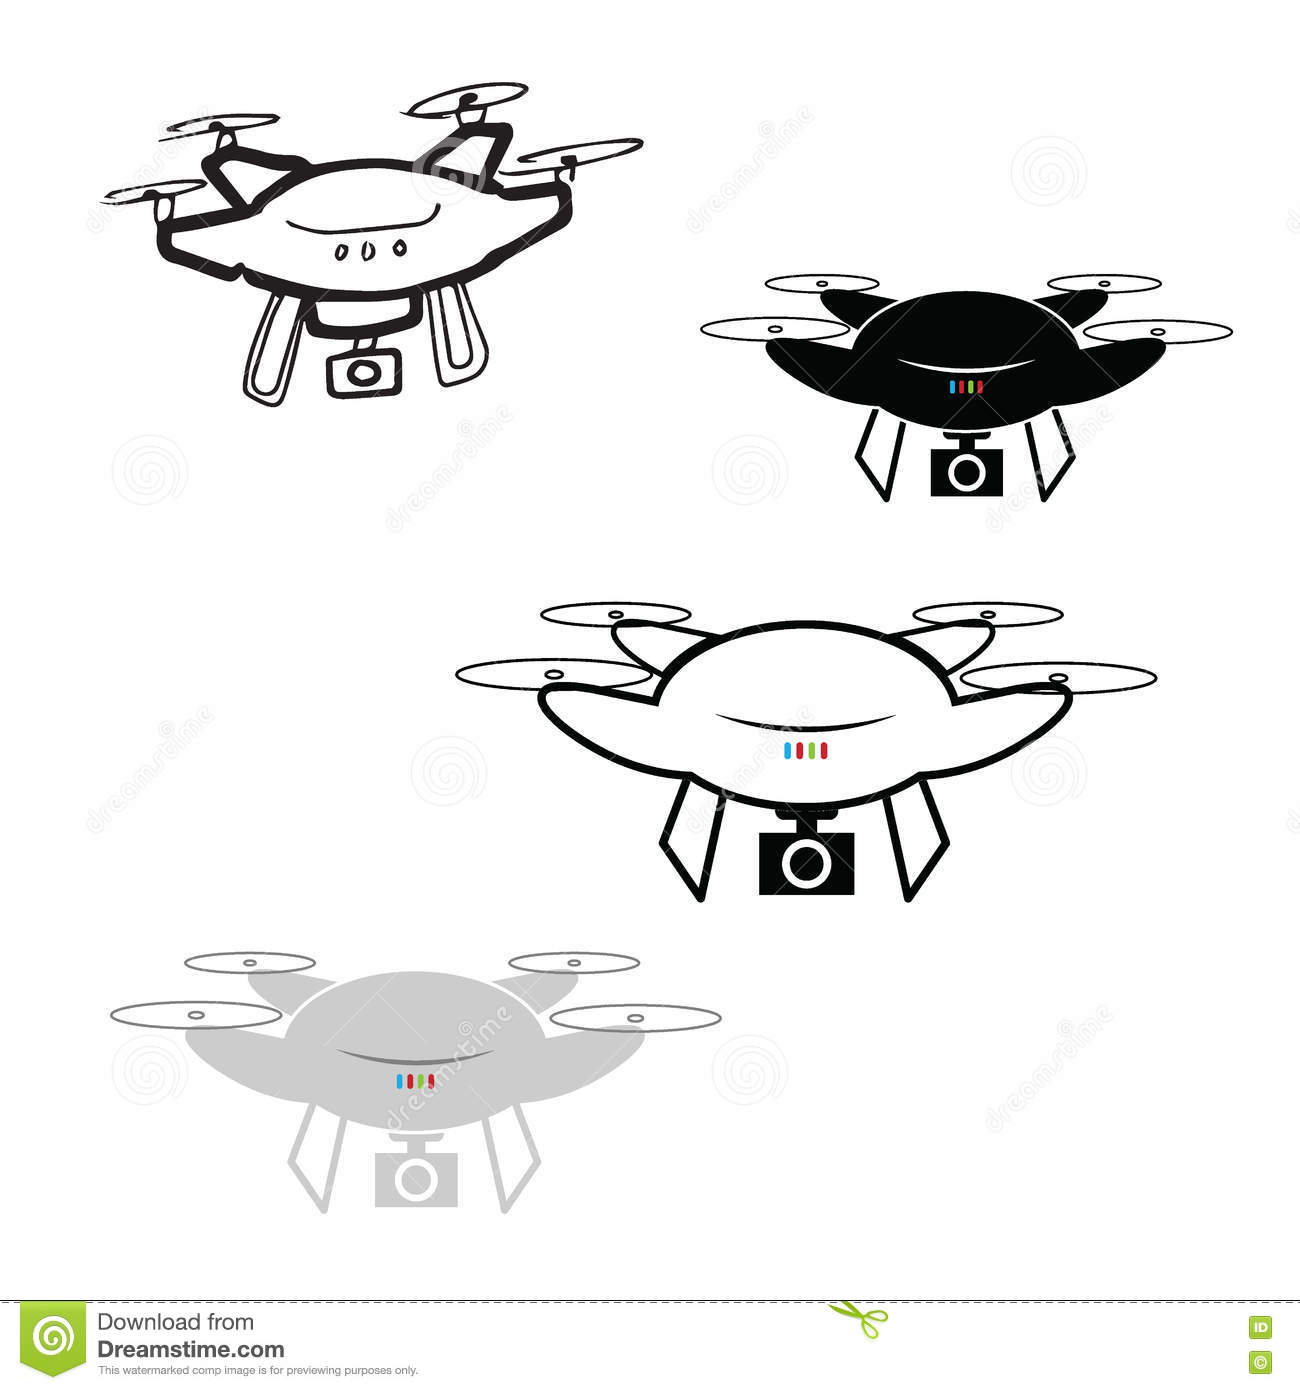 86  quadcopter drone drawing